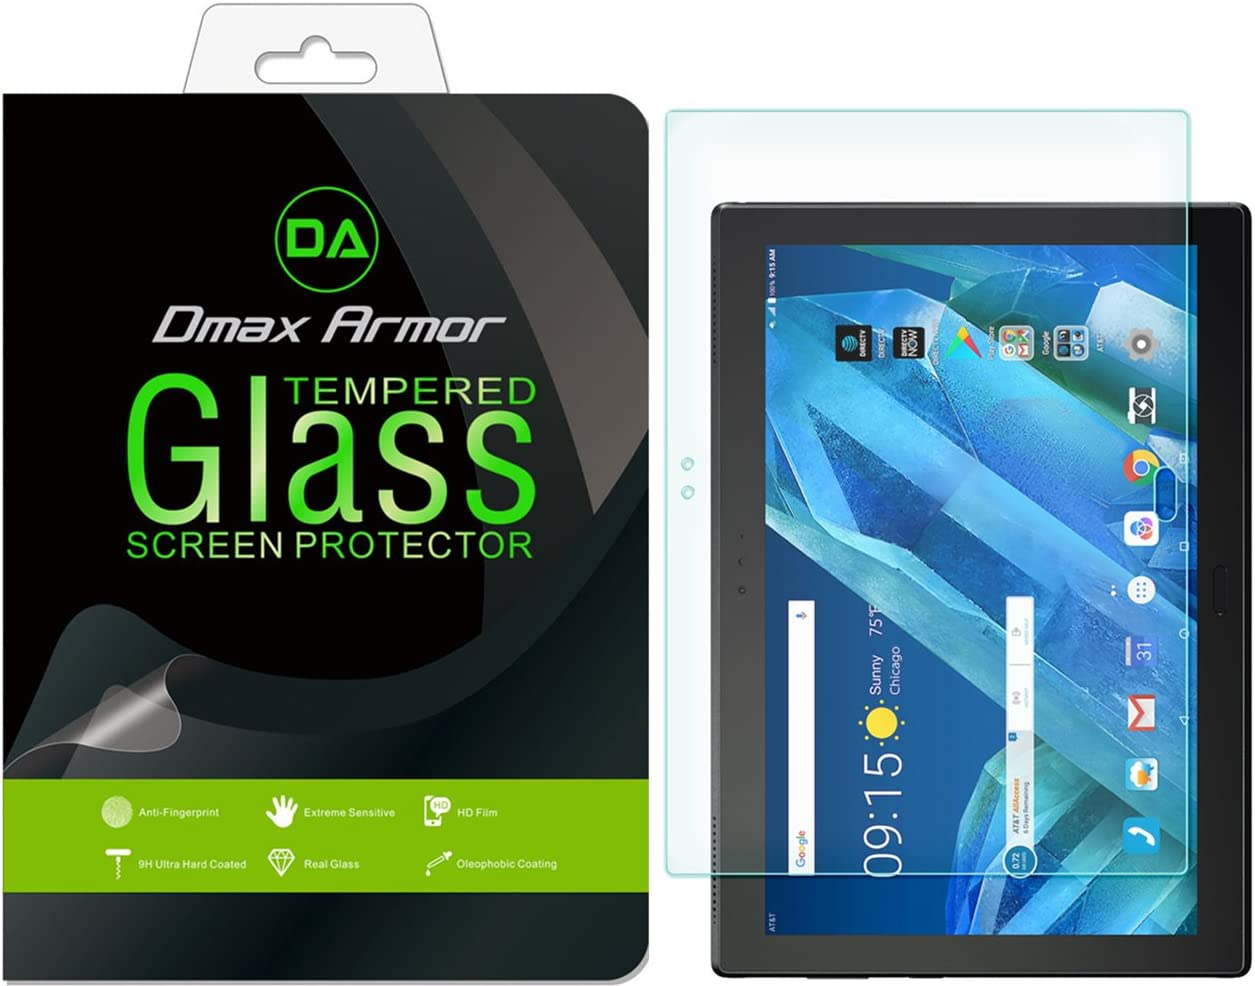 Dmax Armor for Lenovo Tab 4 10 Plus (10.1 inch) Tempered Glass Screen Protector, [Tempered Glass] 0.3mm 9H Hardness, Anti-Scratch, Anti-Fingerprint, Bubble Free, Ultra-Clear